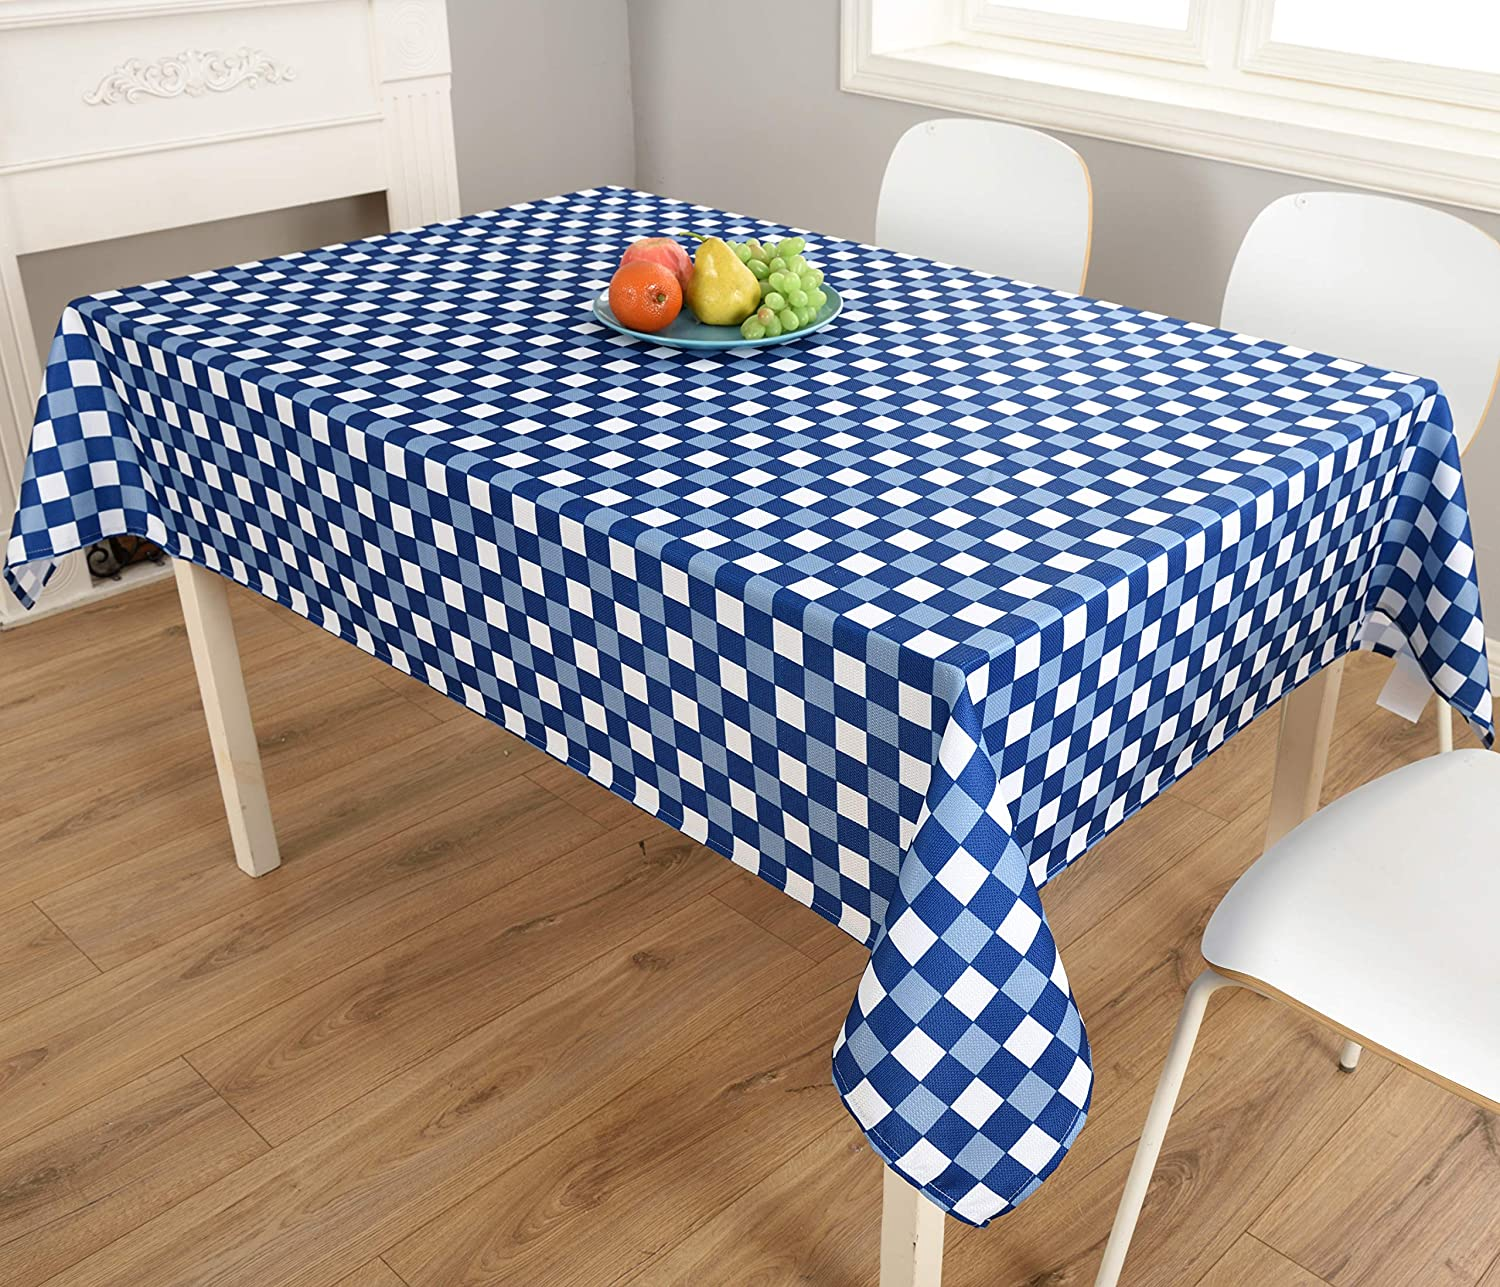 Biscaynebay Fabric Table Cloth 52 by 70 Inches Rectangle, Black Kitchen and Parties Water Resistant Spill Proof Tablecloths for Dining